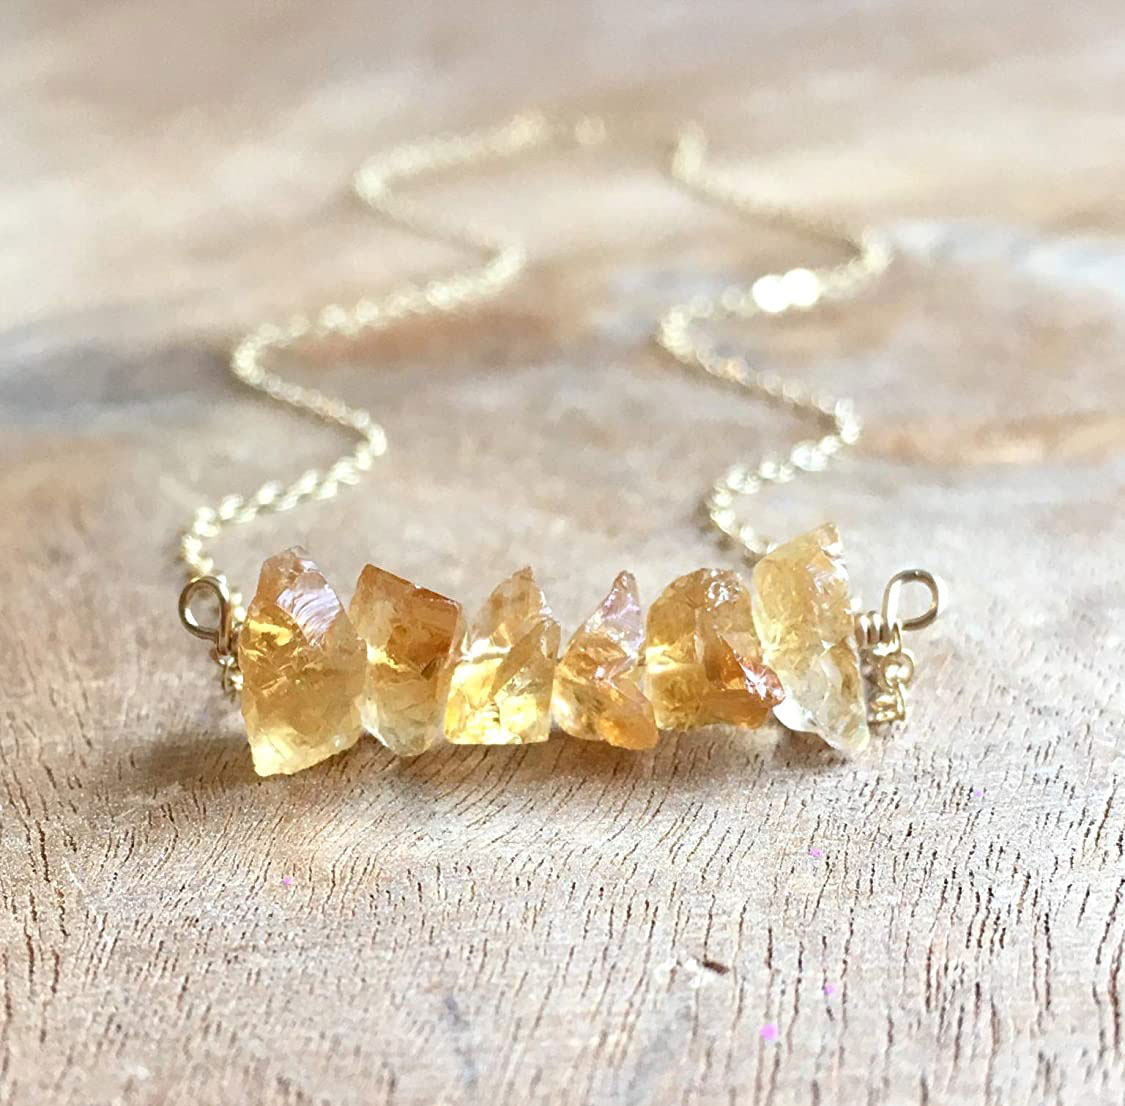 Raw Citrine Crystal Necklace 18 Inch Gold Filled November Birthstone Jewelry For Women